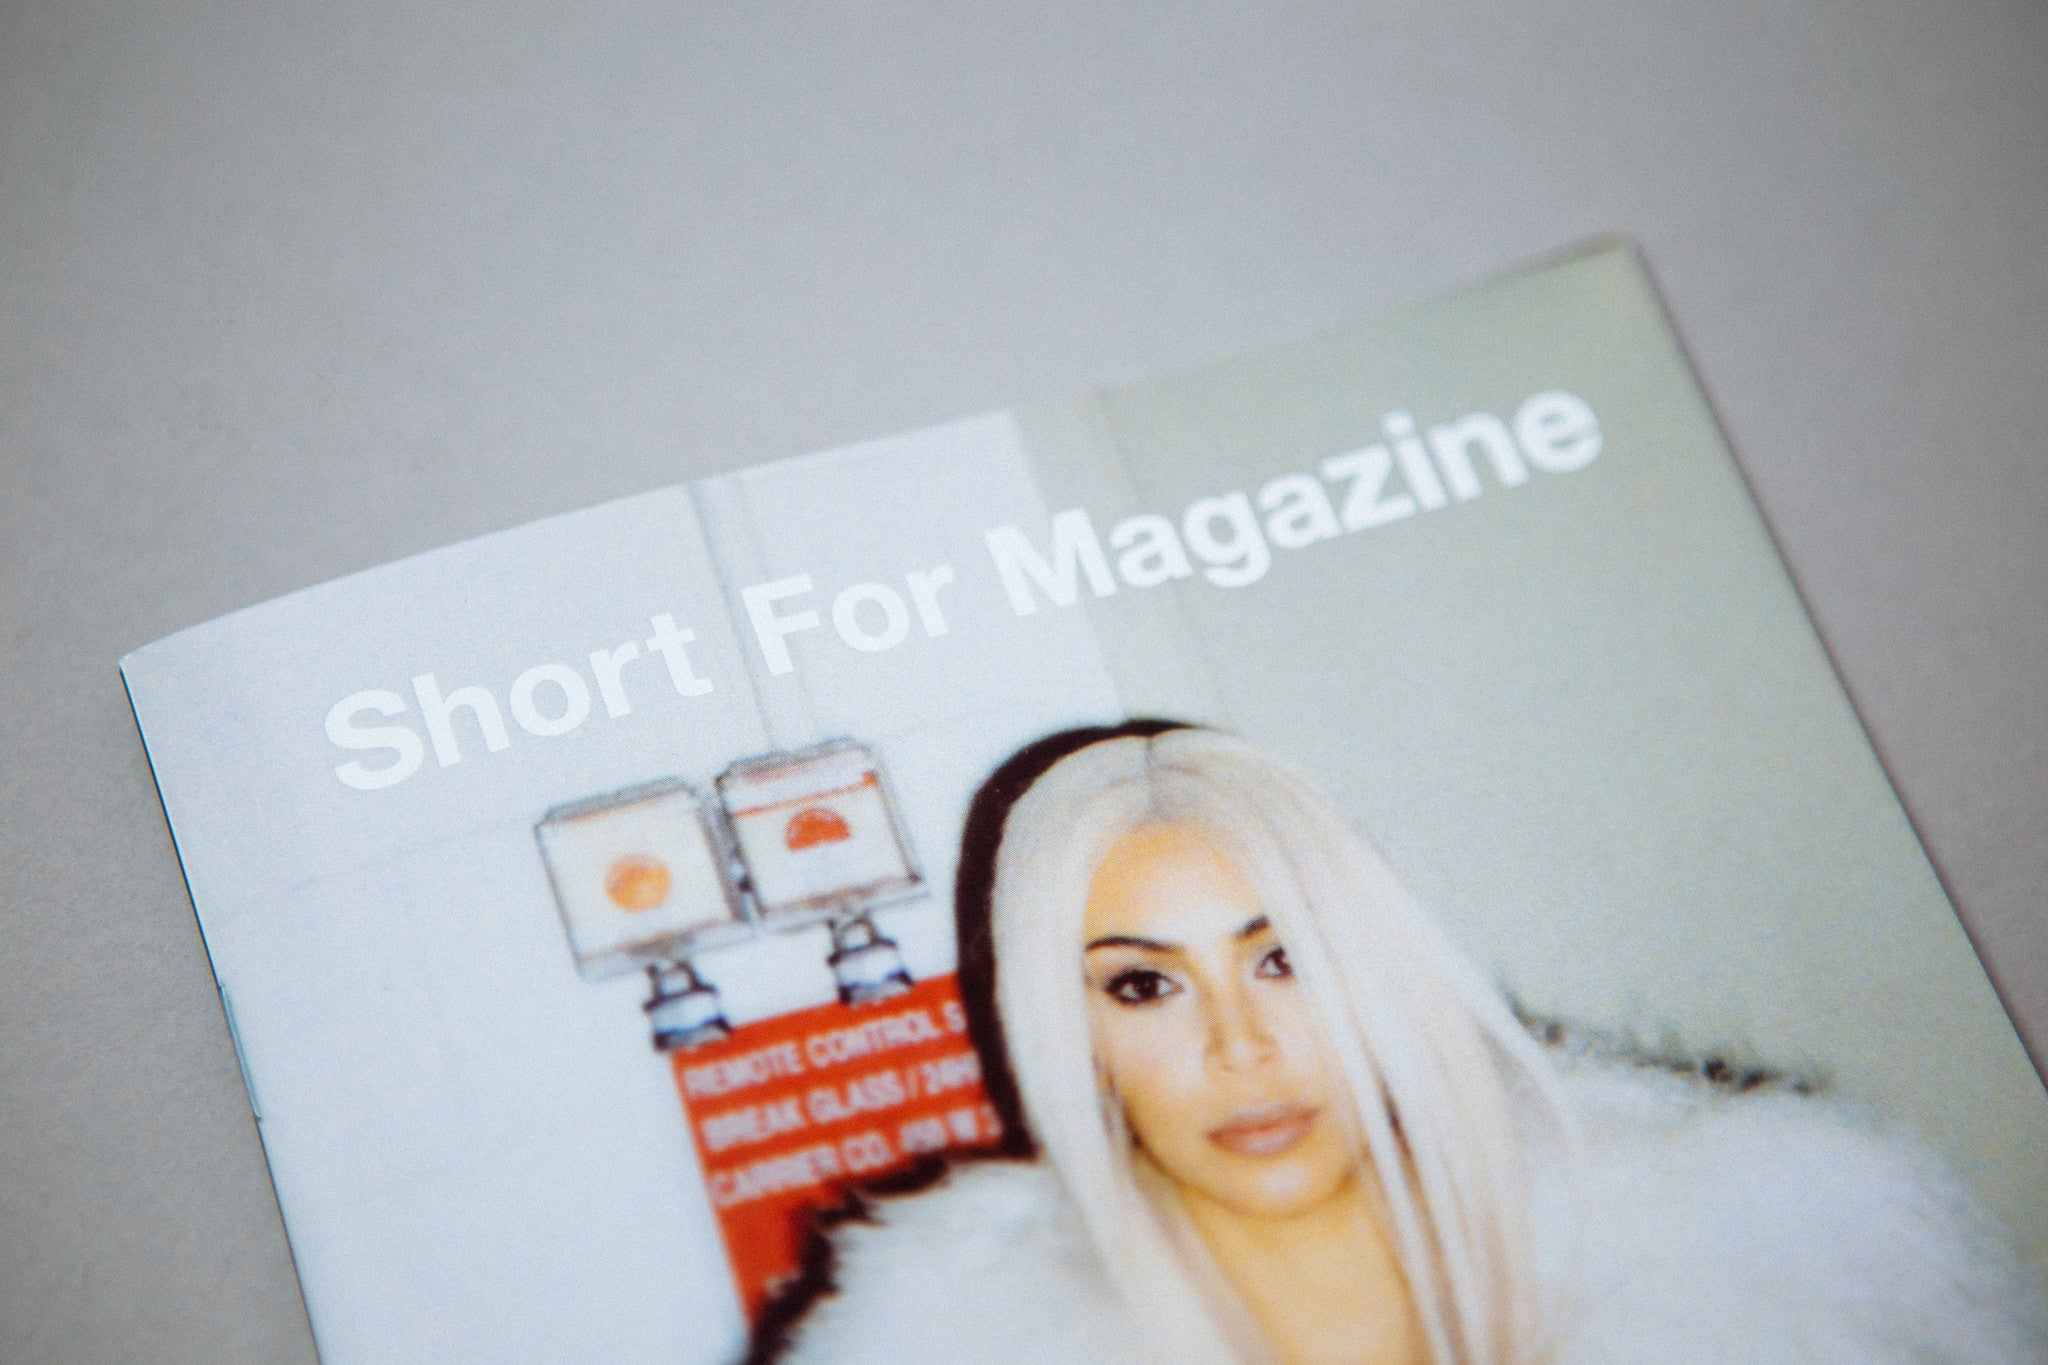 Short For Magazine Issue 1